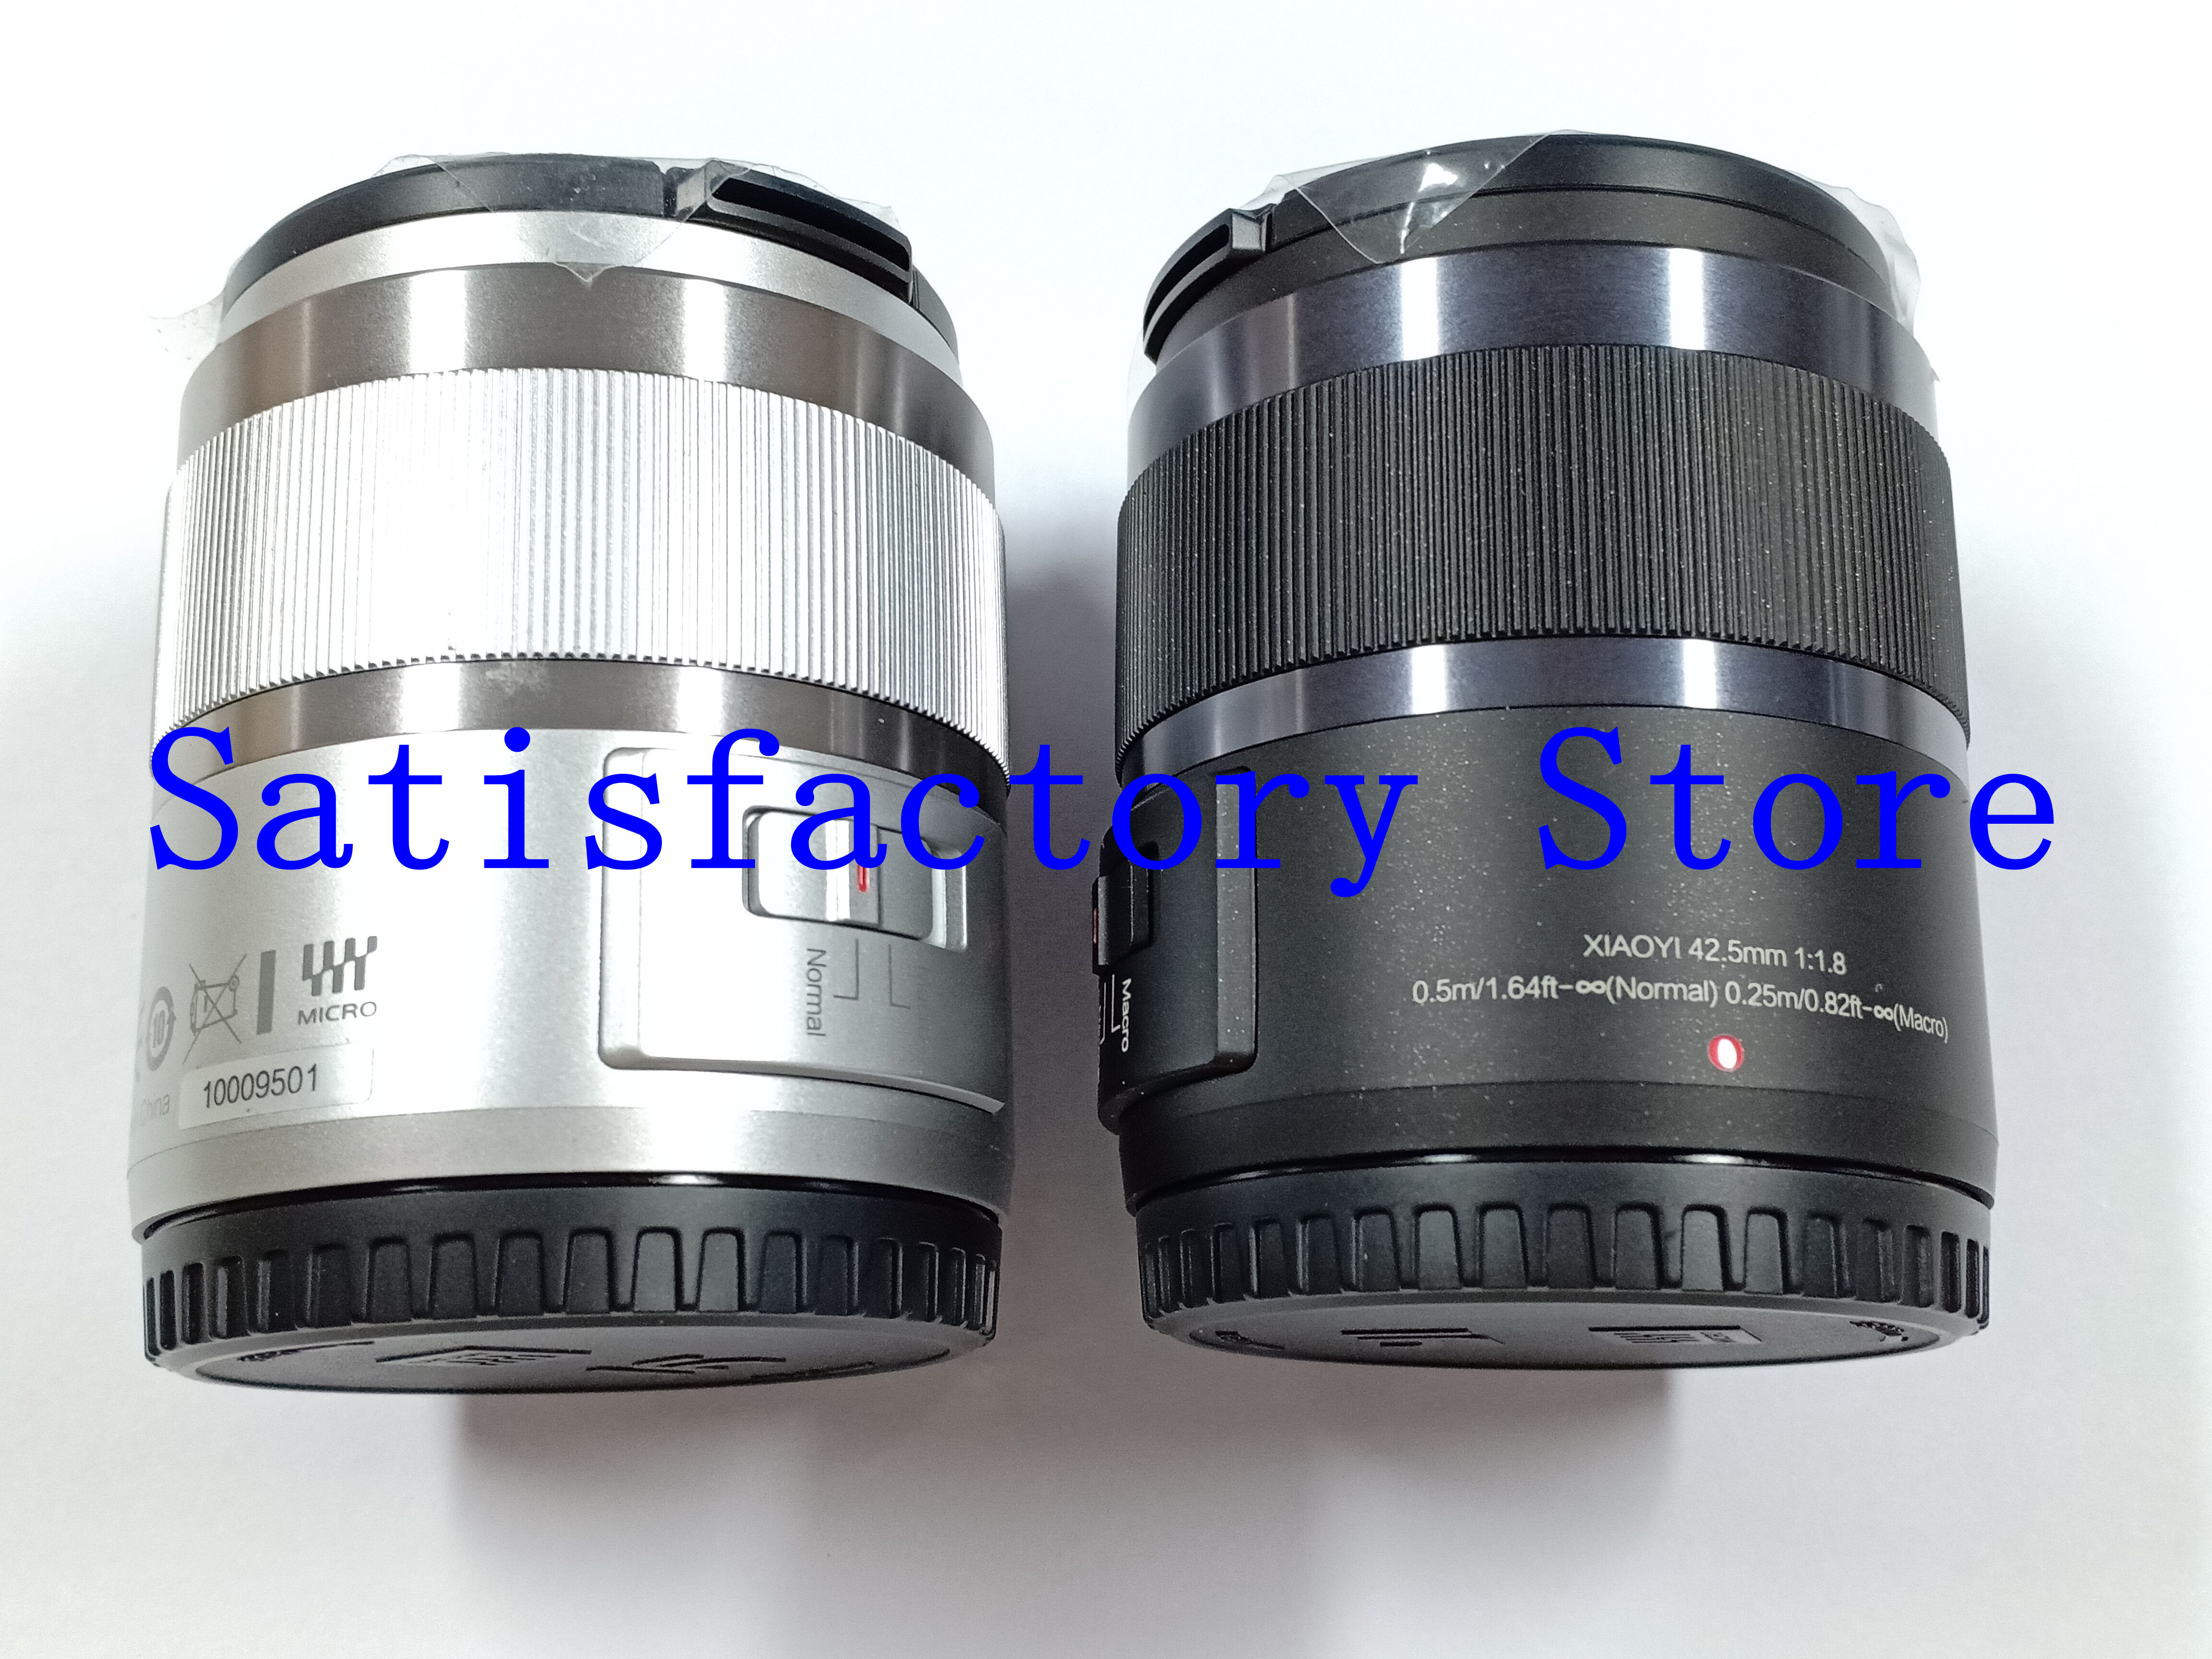 95%New 42.5mm 42.5 F1.8 Fixed Focus Lens For YI M1 For Olympus E-PM1 E-P5 E-PL3 E-PL5 E-PL6 E-PL7 E-PL8 E-PL9 EM5 II Camera